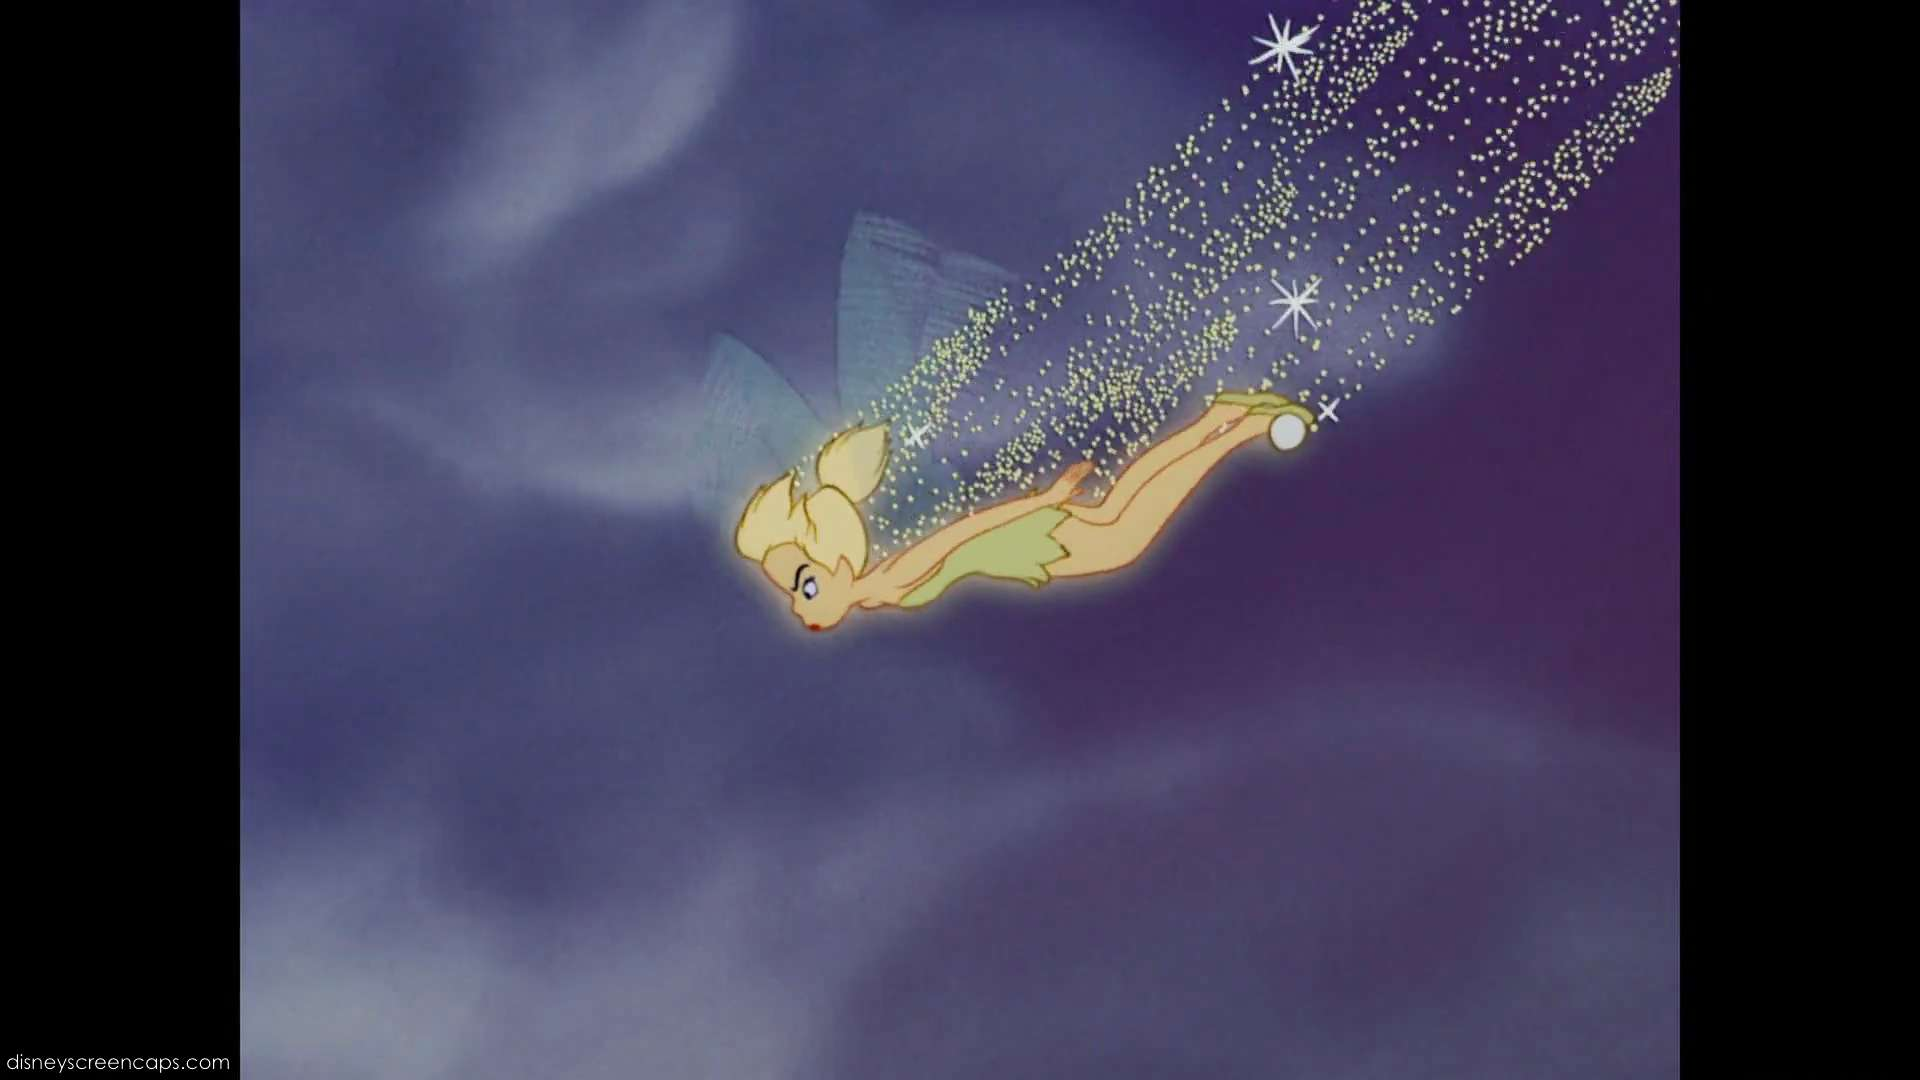 Tink in PP